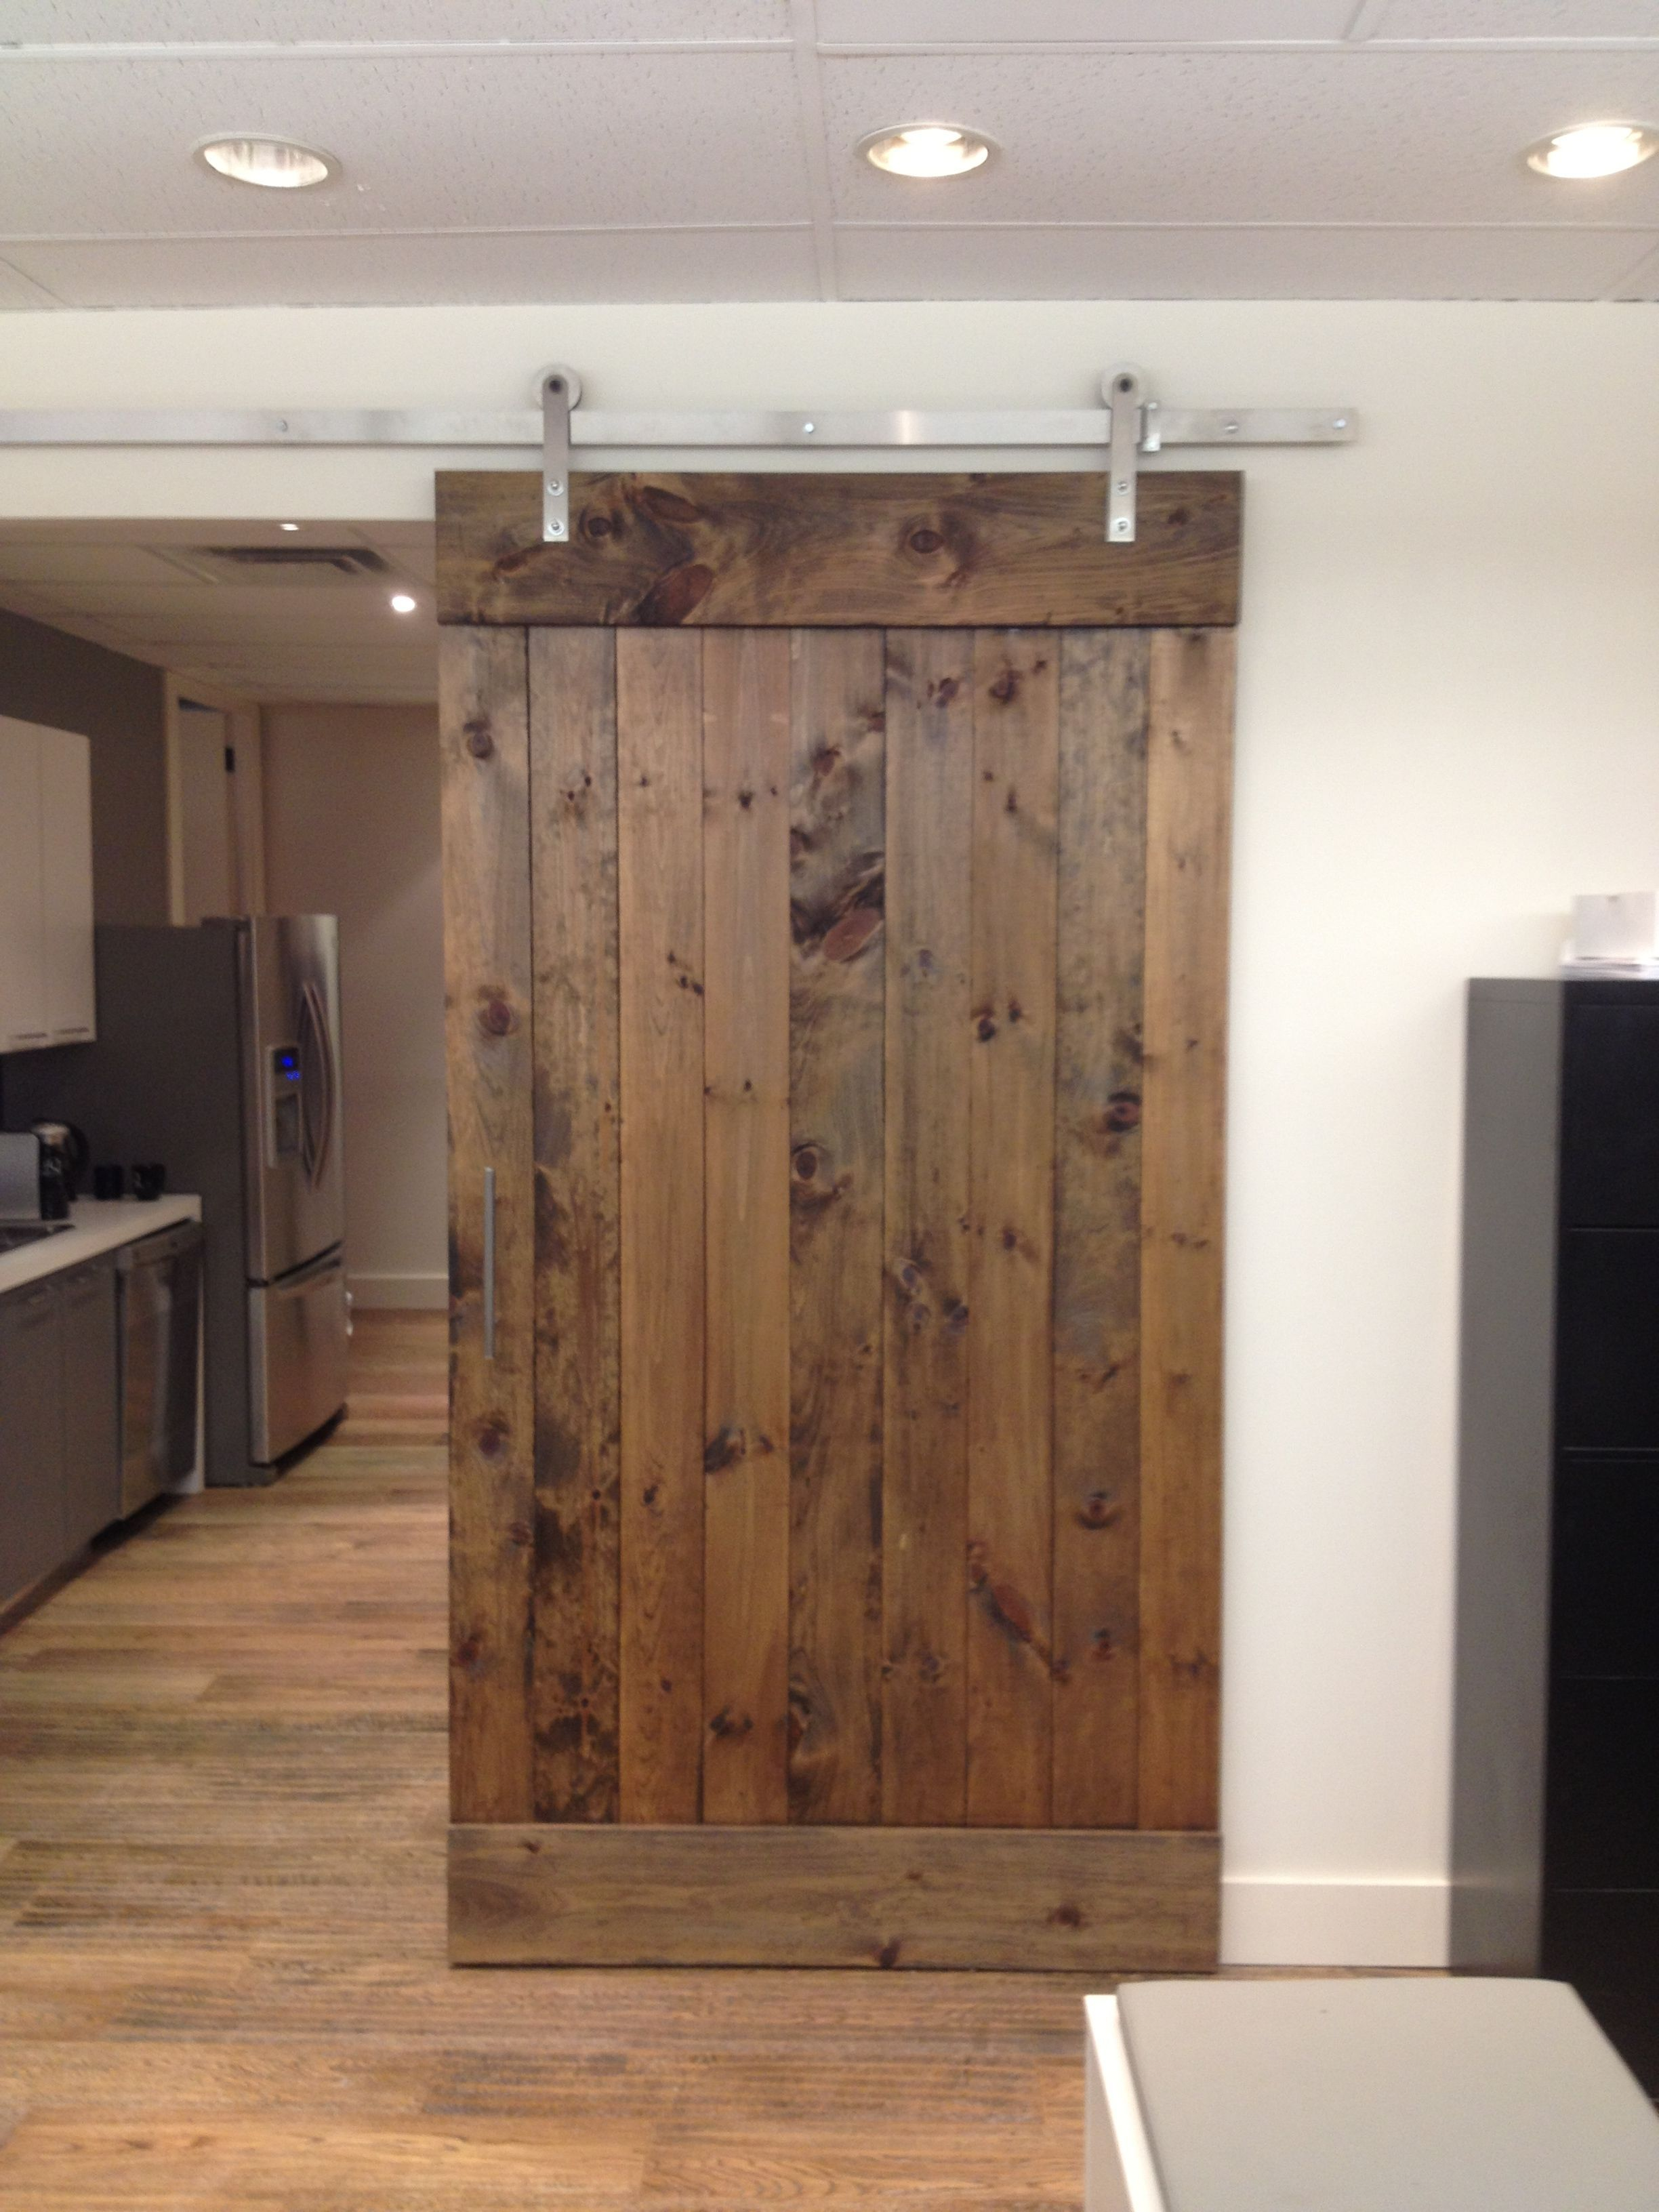 Sliding Barn Door Inside House Http Togethersandiacom Inside Barn Doors Barn Door Designs Sliding Doors Interior